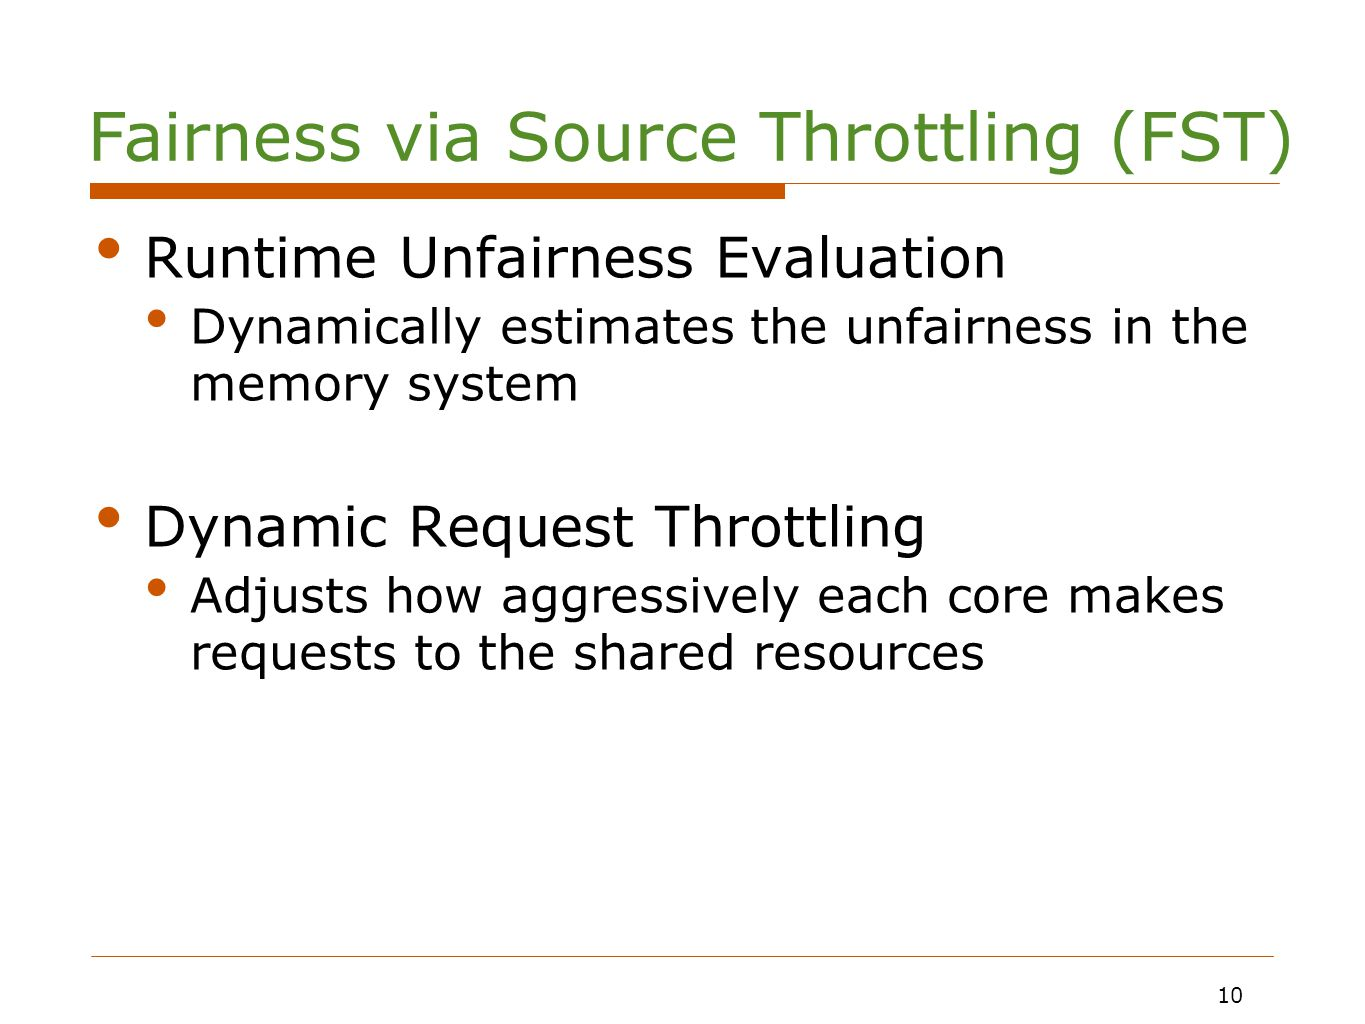 10 Runtime Unfairness Evaluation Dynamically estimates the unfairness in the memory system Dynamic Request Throttling Adjusts how aggressively each core makes requests to the shared resources 10 Fairness via Source Throttling (FST)